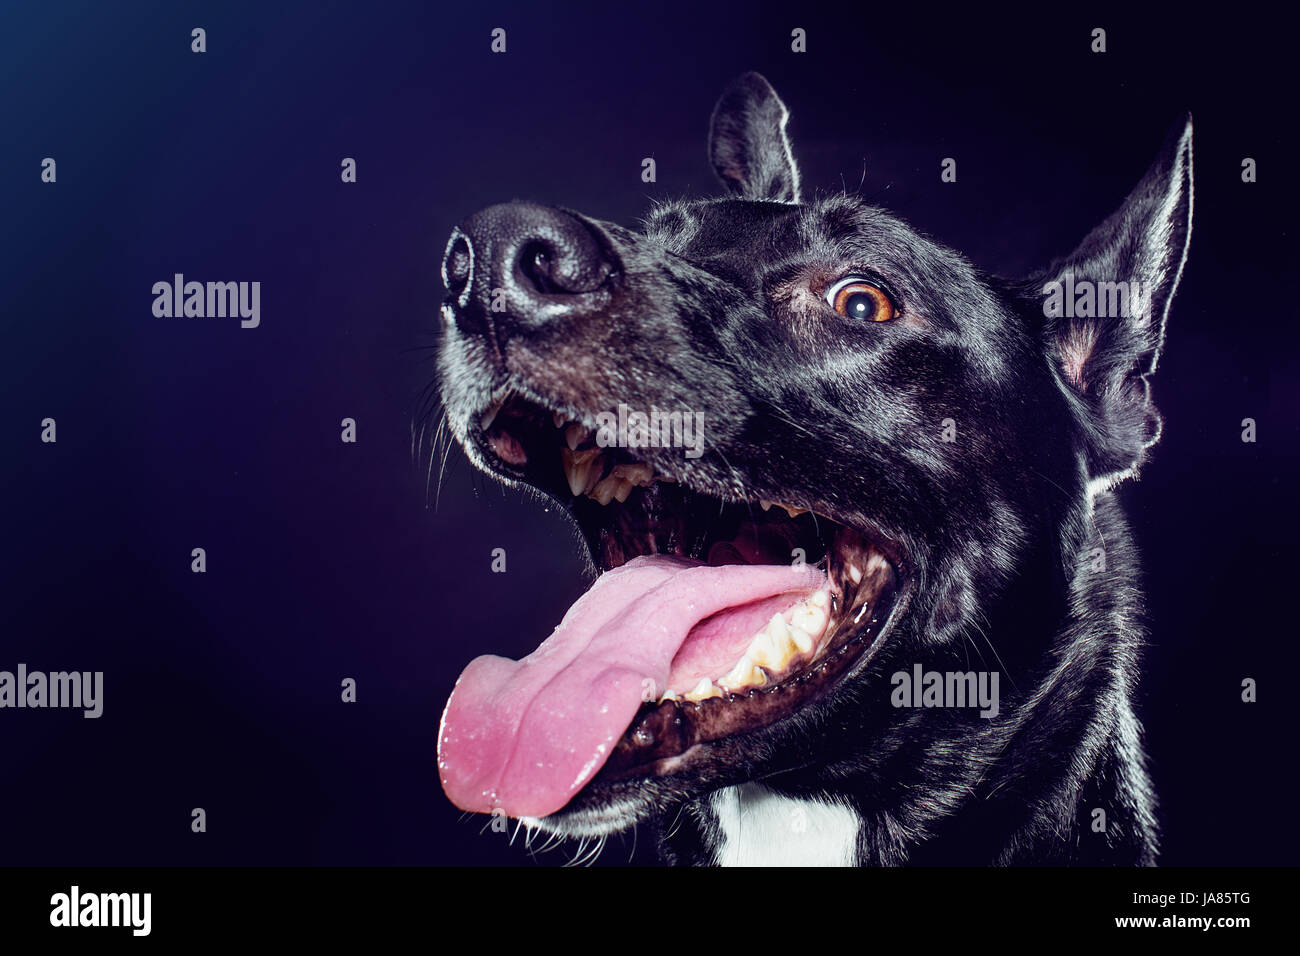 Studio profile portrait of a black German Shepherd mix looking excitedly at camera with tongue out, Stock Photo